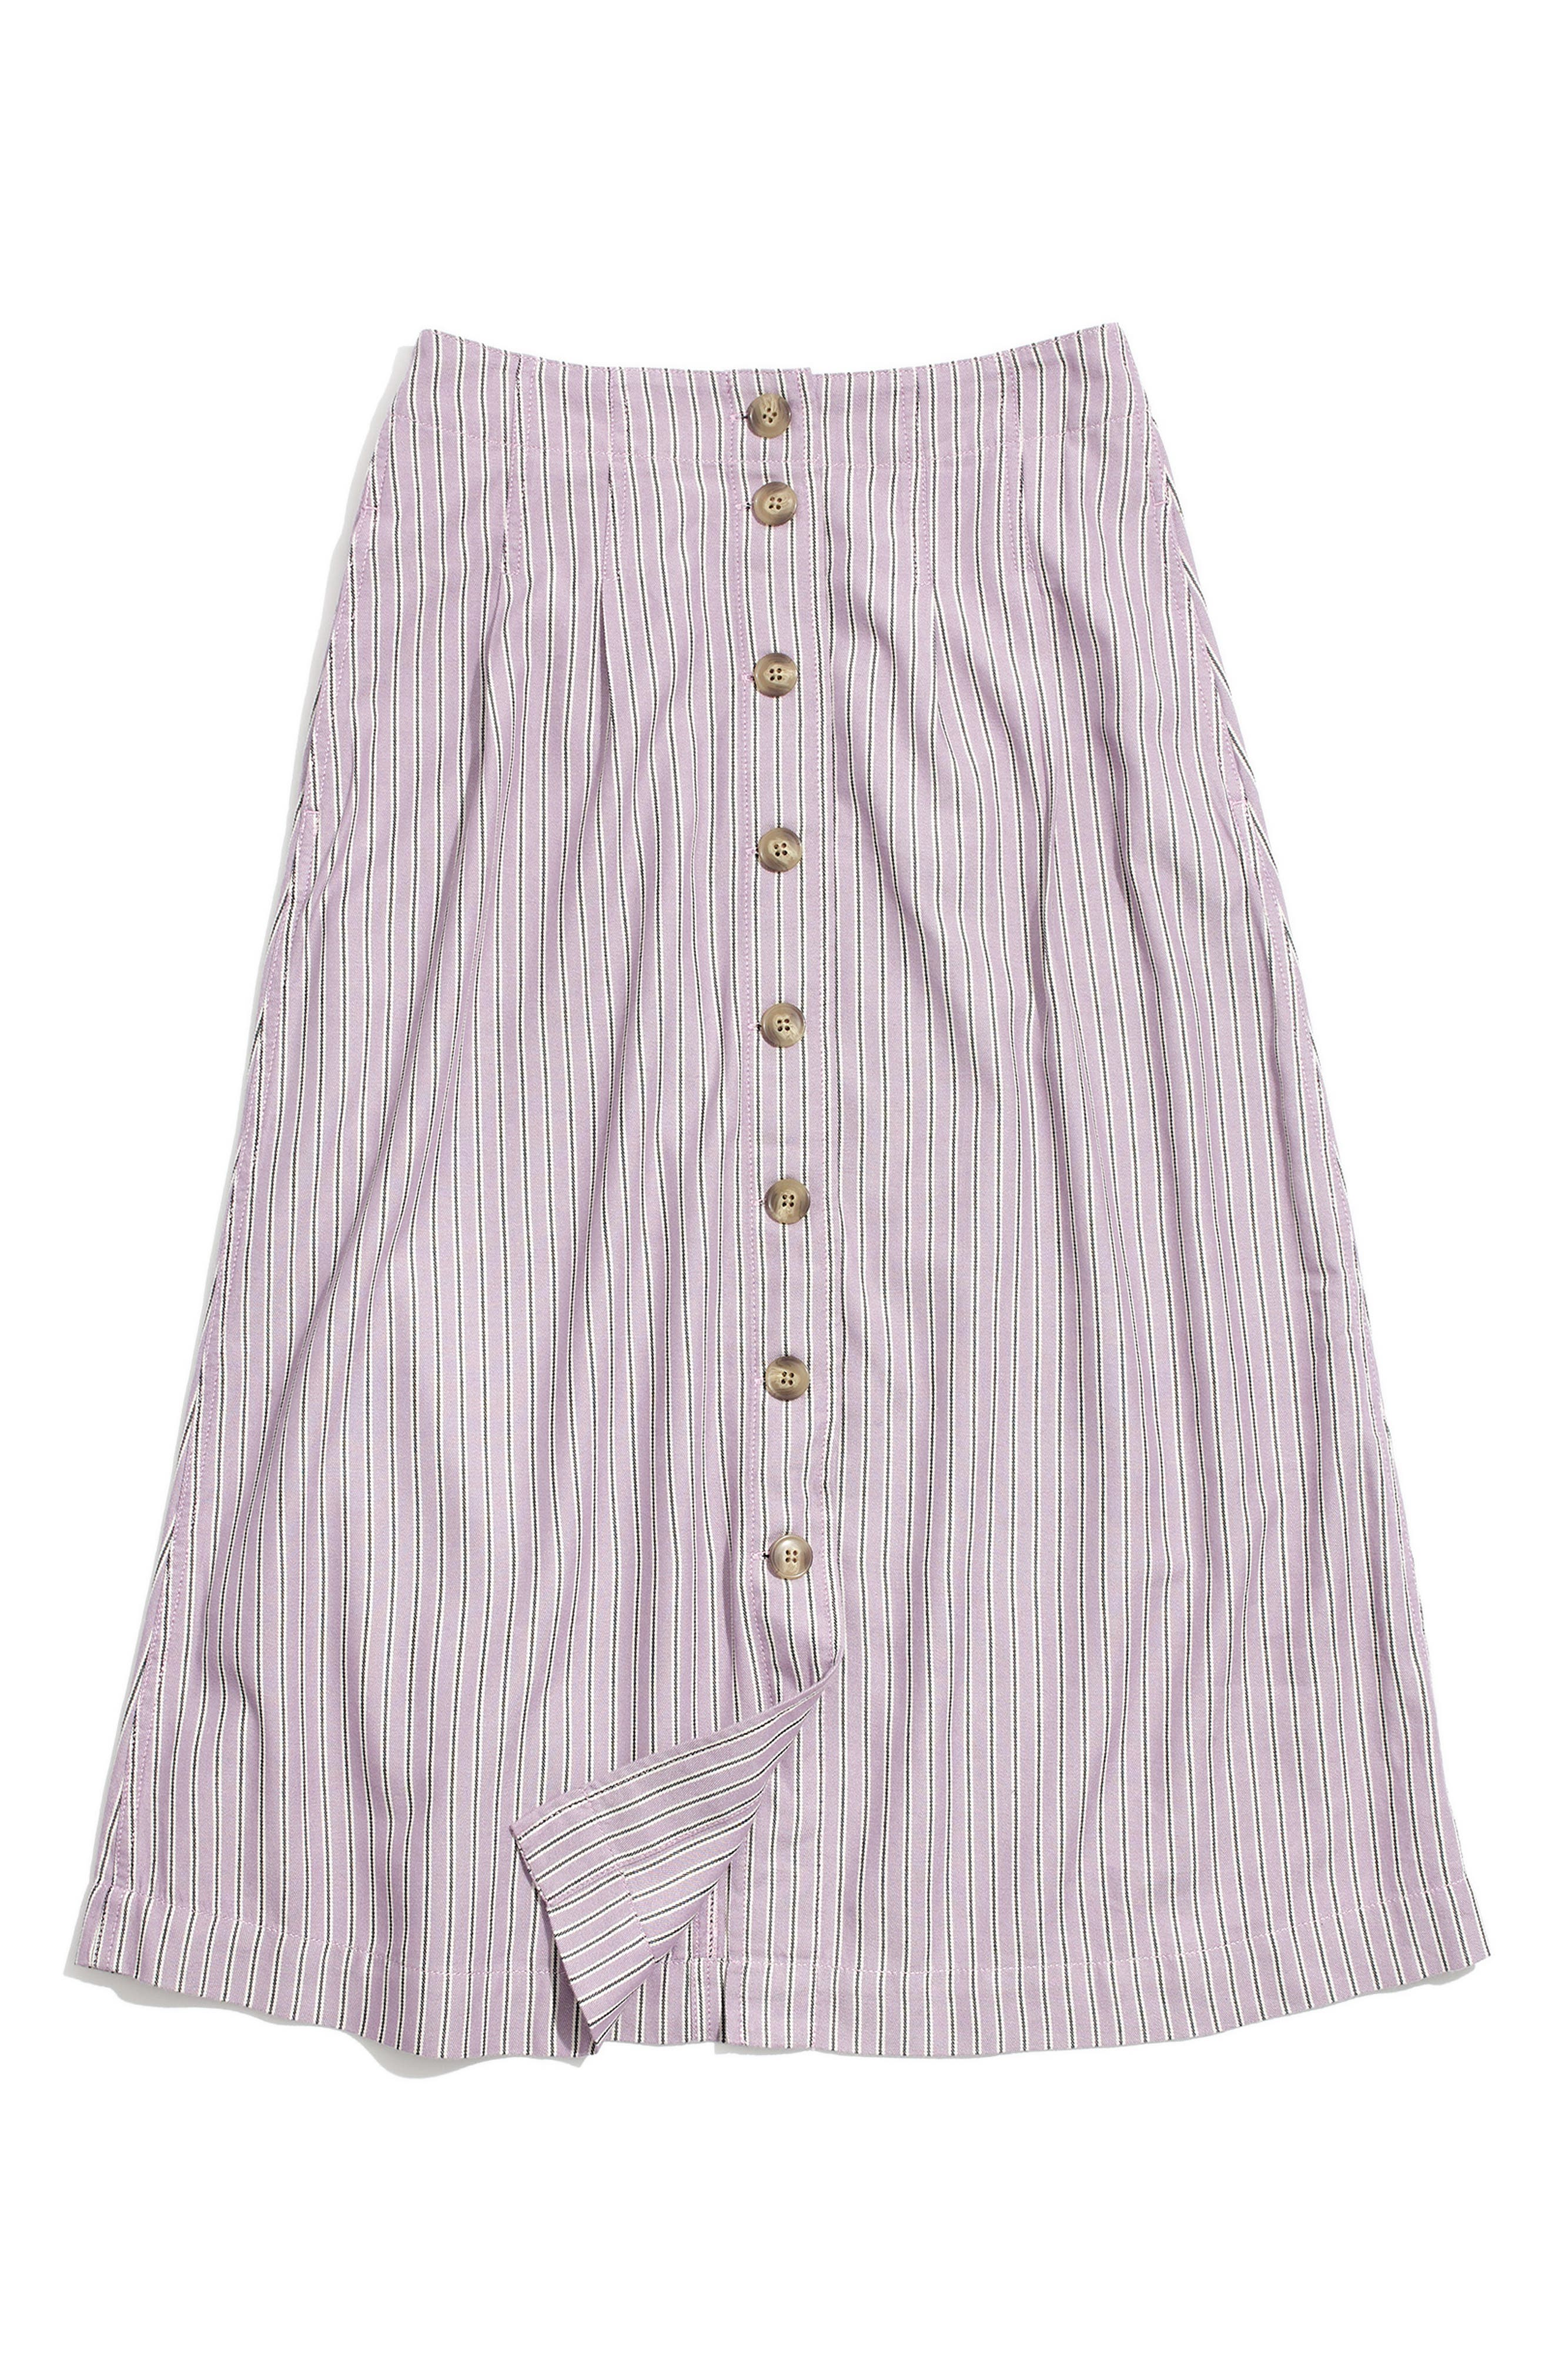 MADEWELL Patio Lilac Stripe Button Front Midi Skirt, Main, color, SERINE LAVENDER RENSER STRIPE